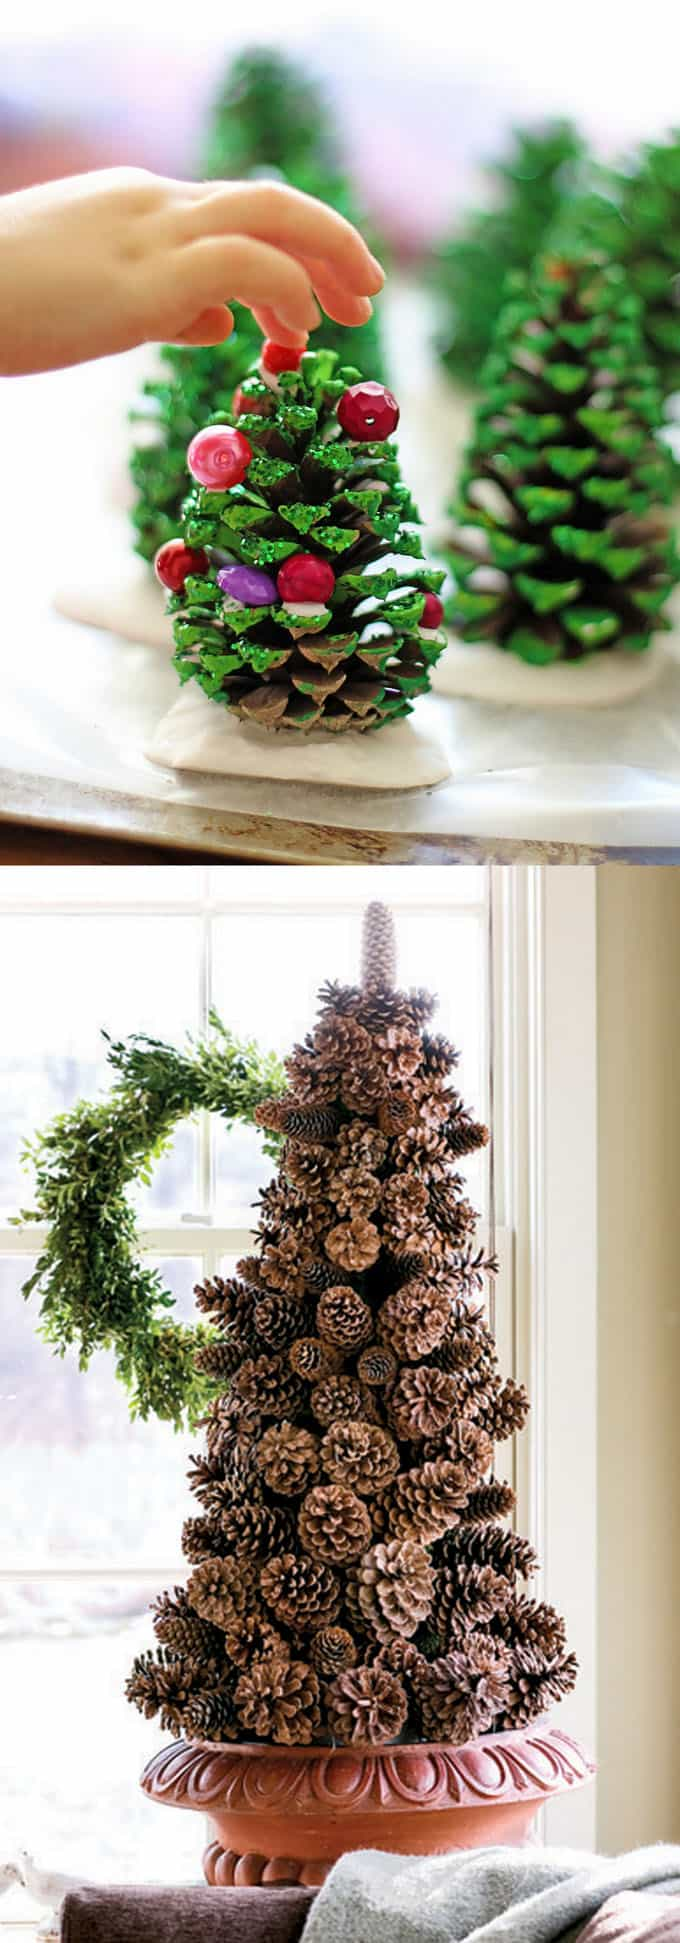 Pine Cone Christmas Ornaments To Make.48 Amazing Christmas Tree Ideas A Piece Of Rainbow